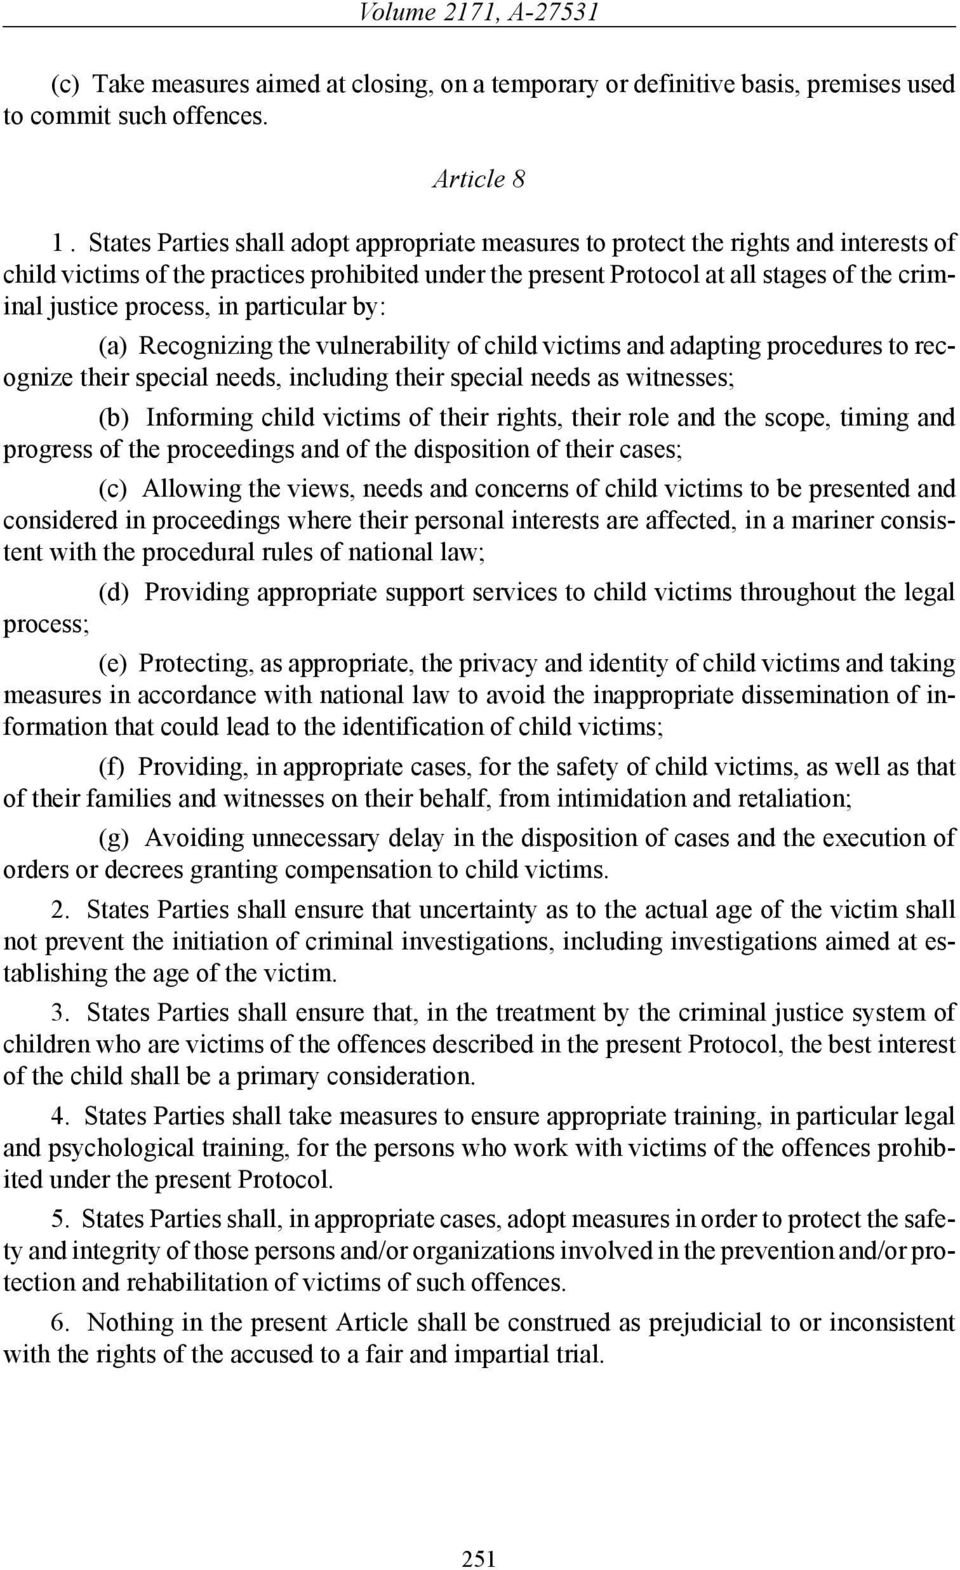 process, in particular by: (a) Recognizing the vulnerability of child victims and adapting procedures to recognize their special needs, including their special needs as witnesses; (b) Informing child